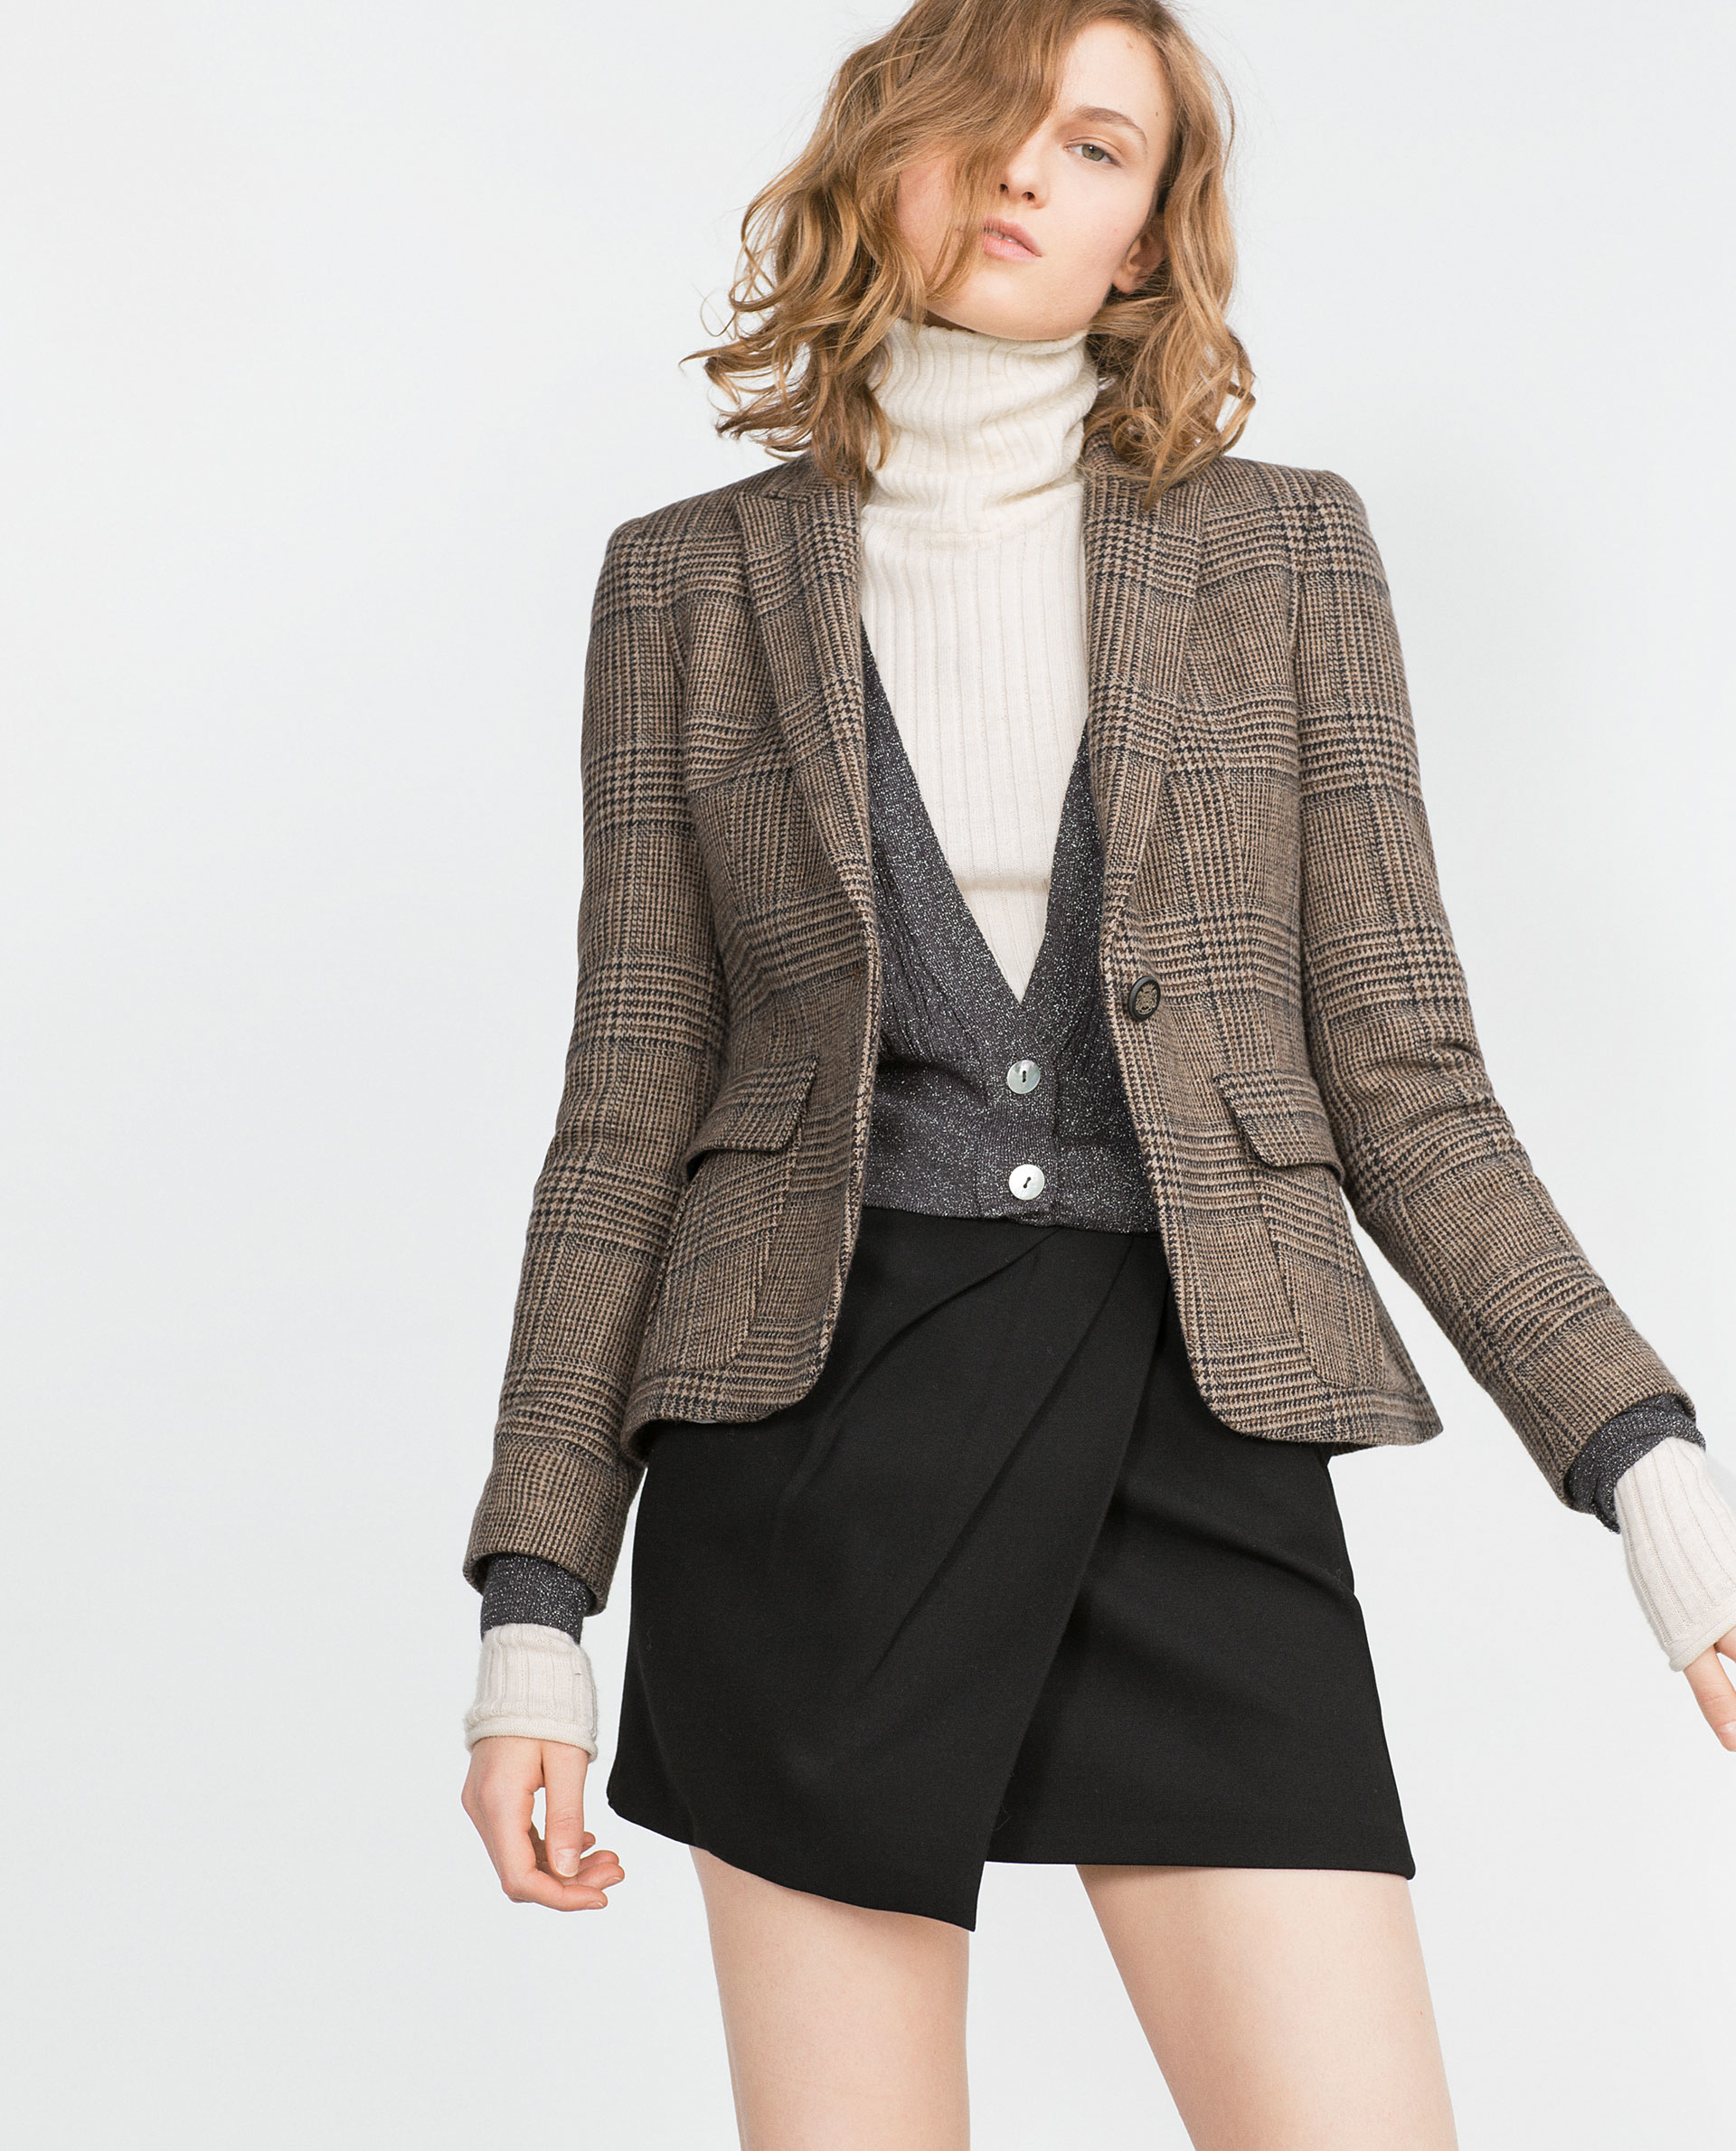 Find a great selection of women's blazers & jackets at reformpan.gq Shop top brands like Vince Camuto, Topshop, Lafayette and more. Free shipping and returns.